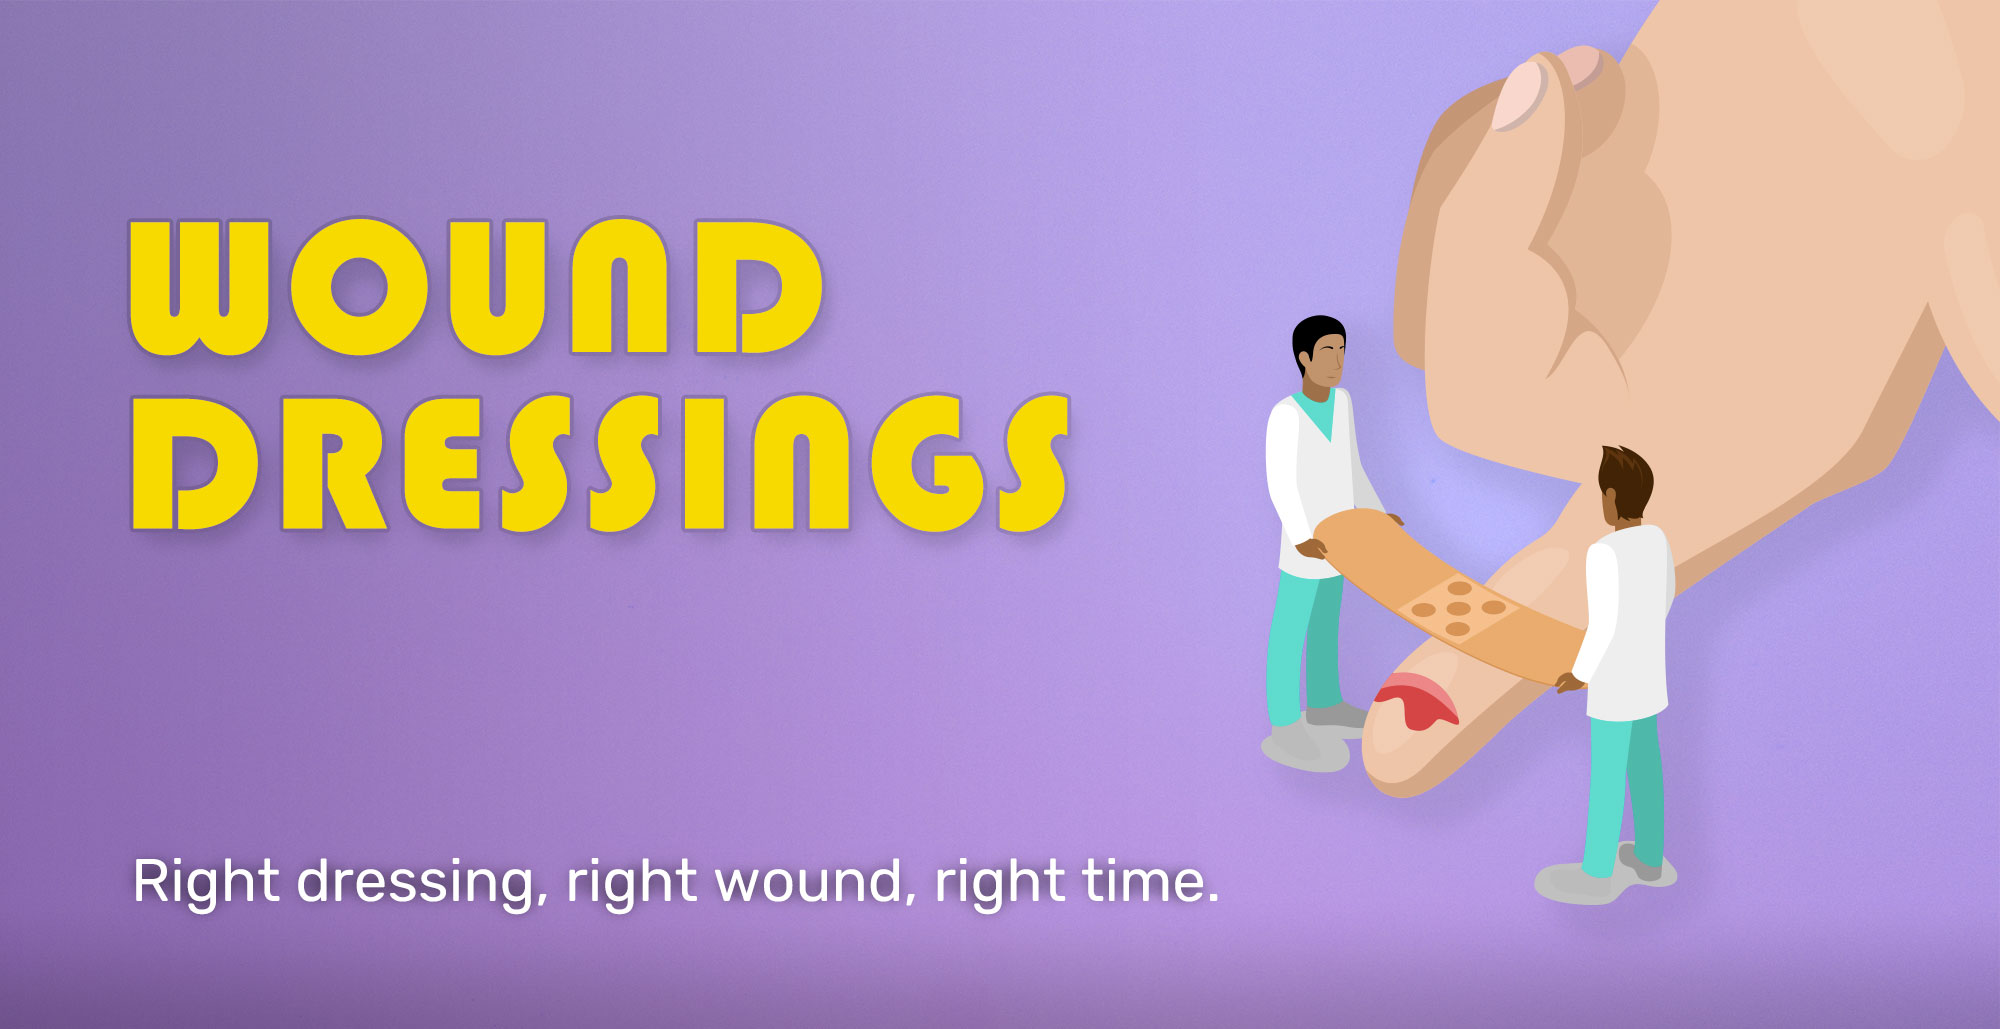 Cover image for: 'Wound Dressings'